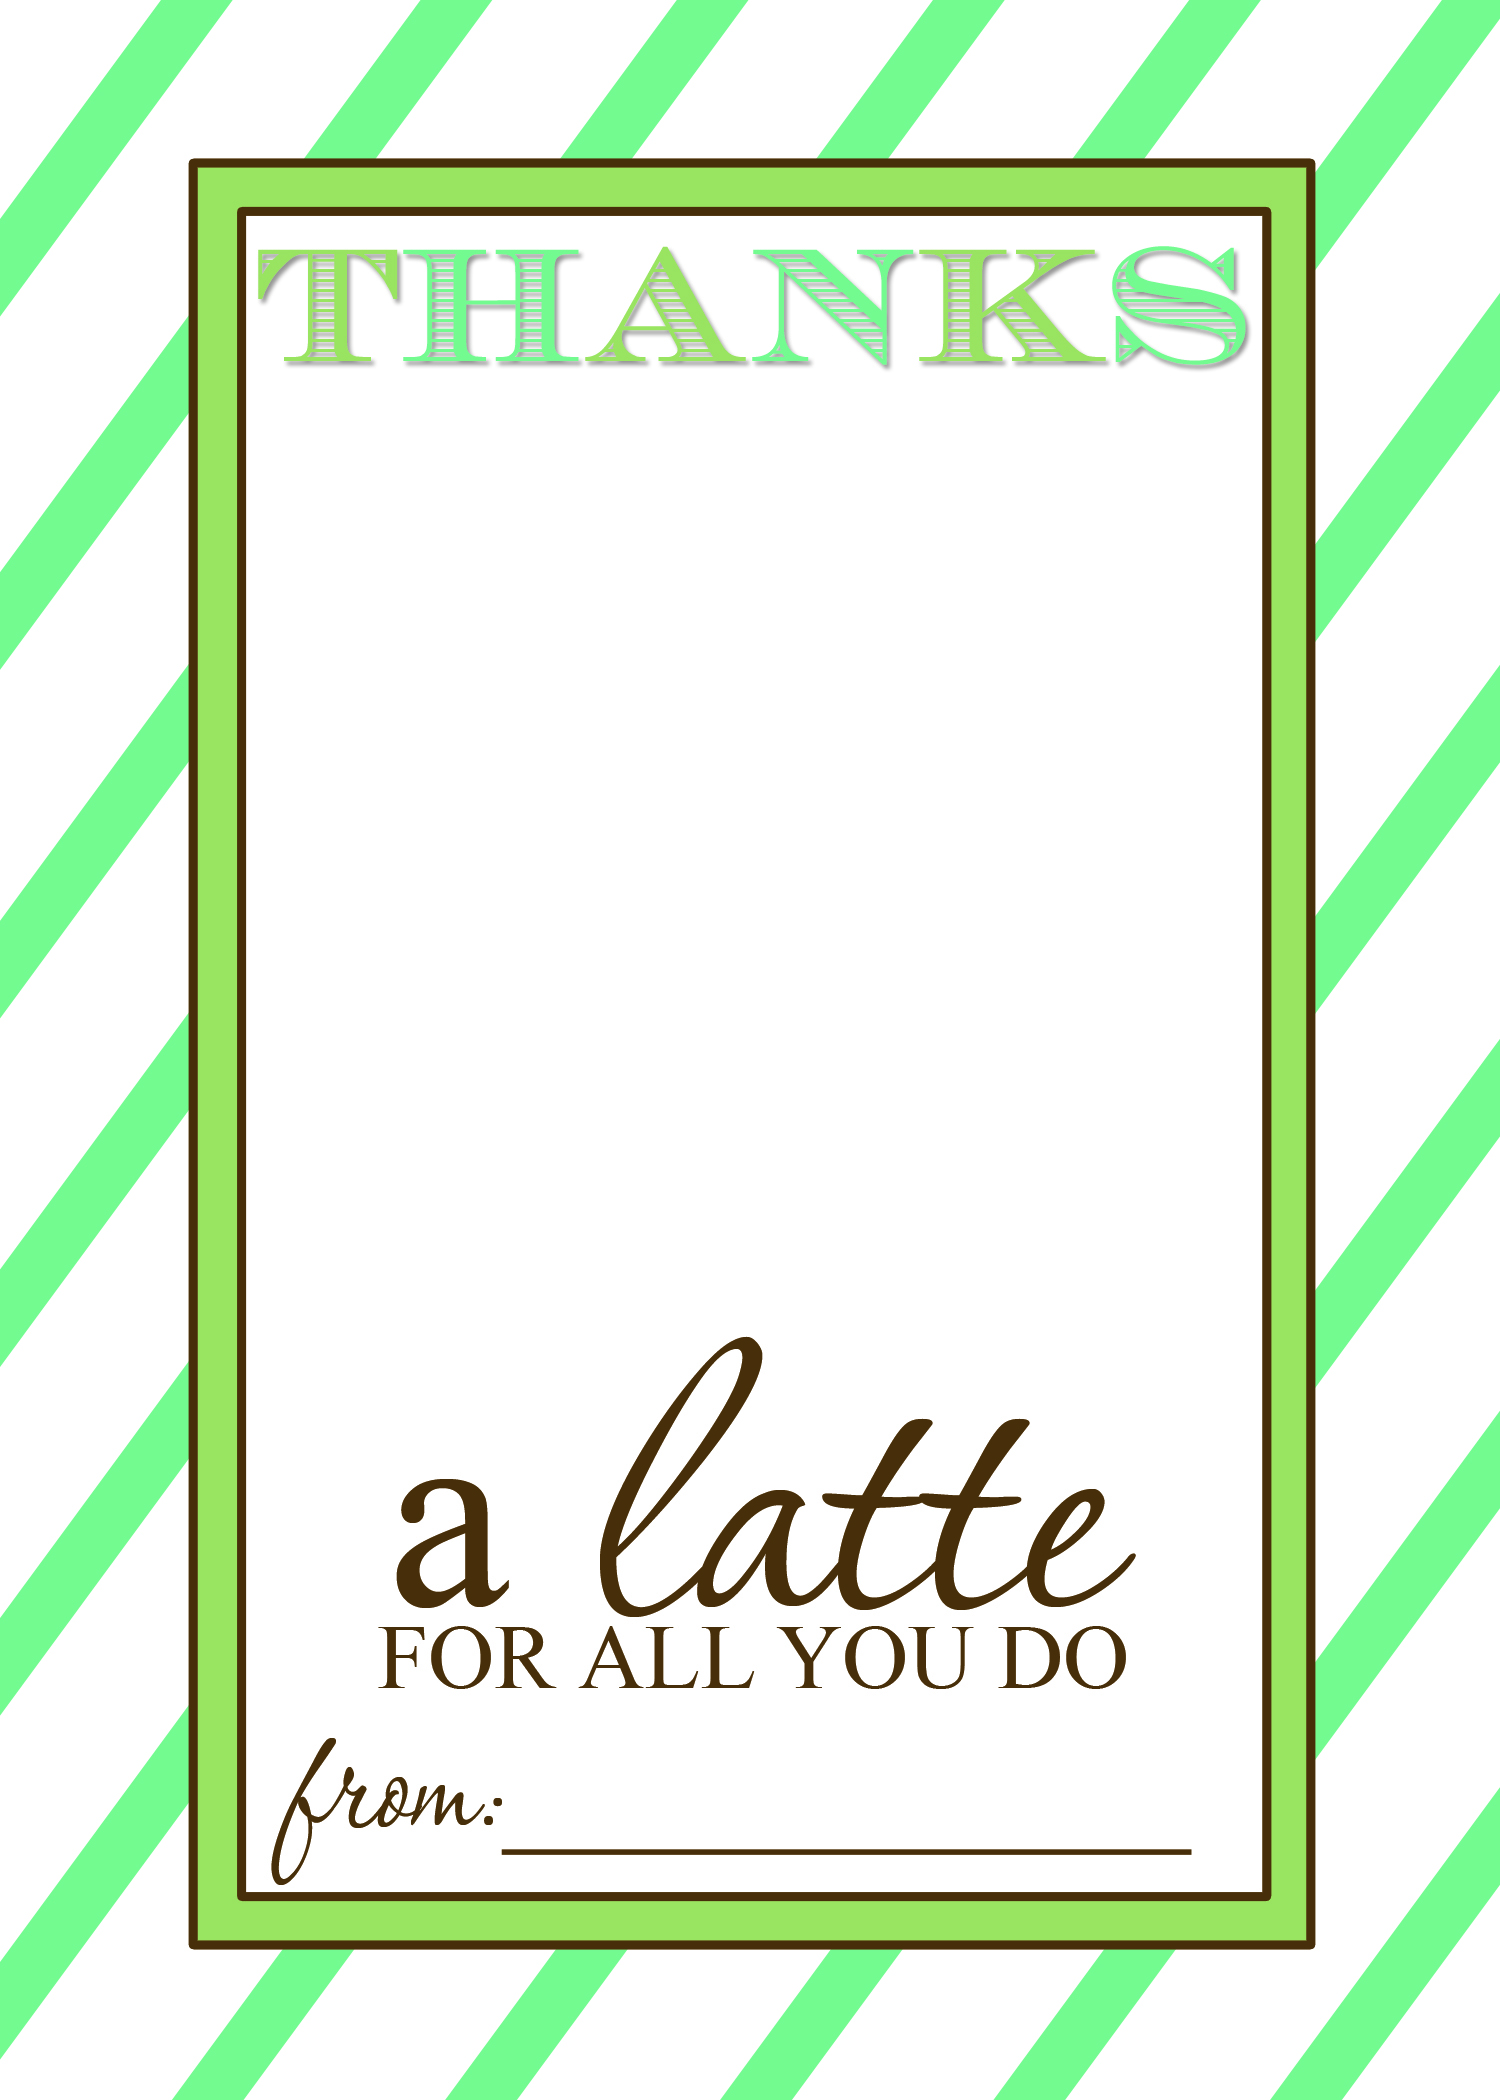 thanks a latte teacher appreciation gift idea with free printable card templates. Black Bedroom Furniture Sets. Home Design Ideas